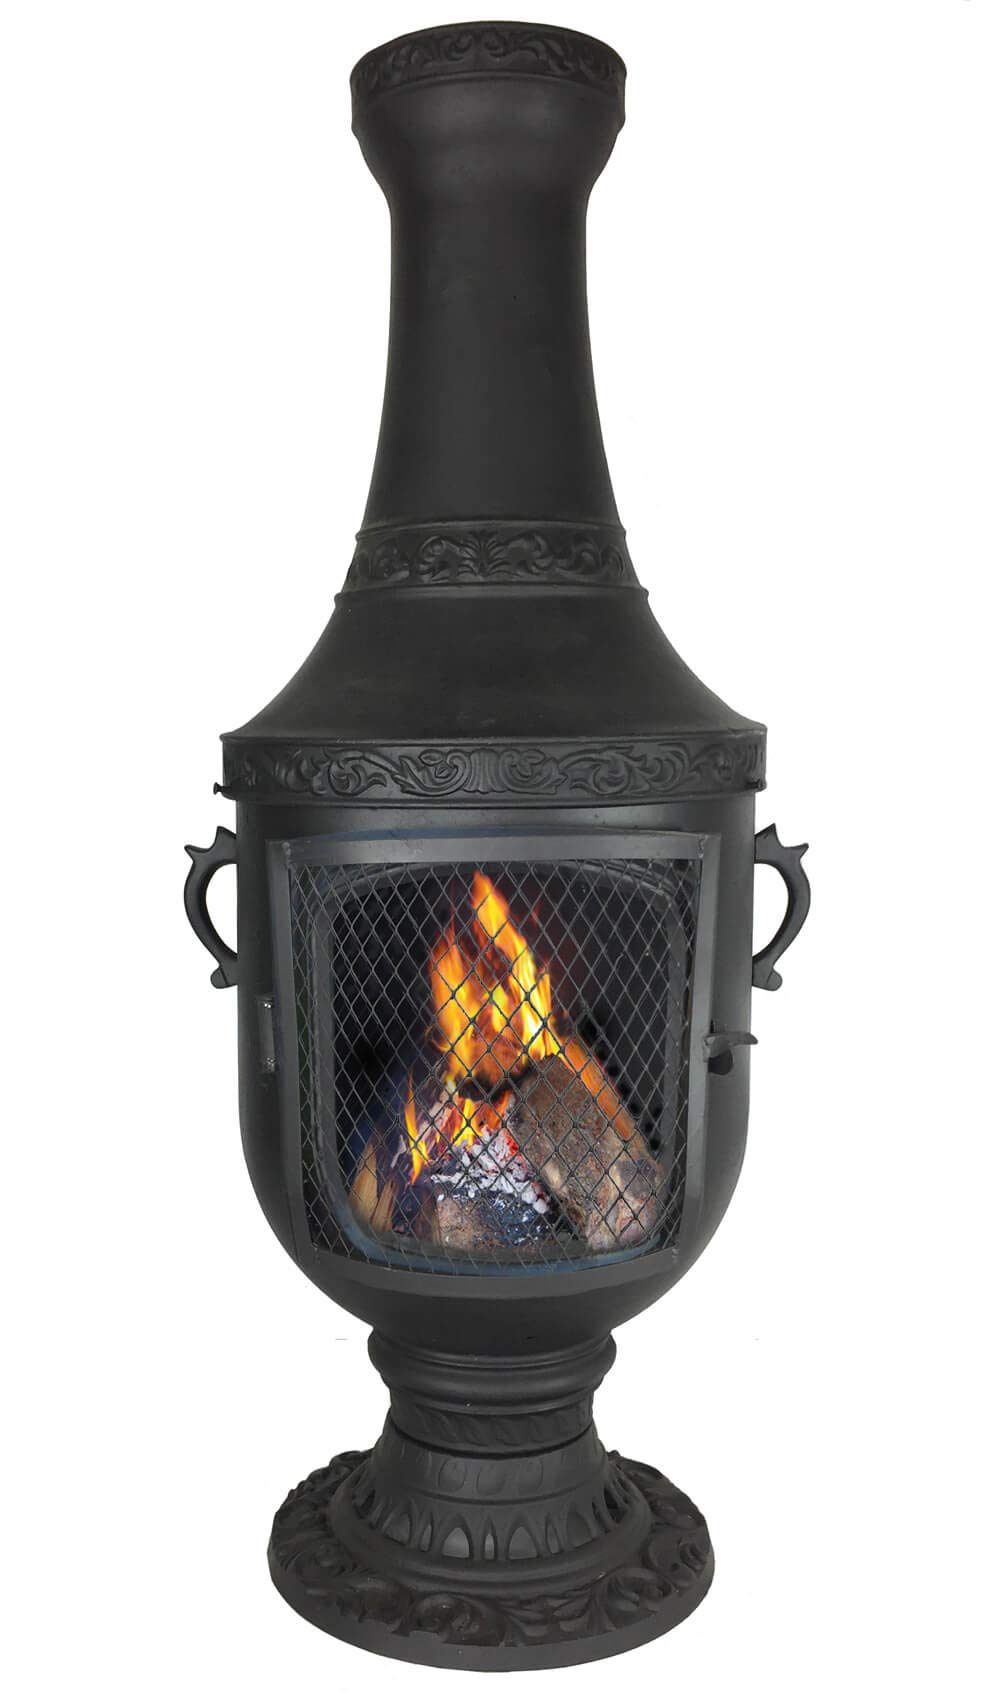 The Venetian Grill & Oven Chiminea CAST Iron by The Blue Rooster